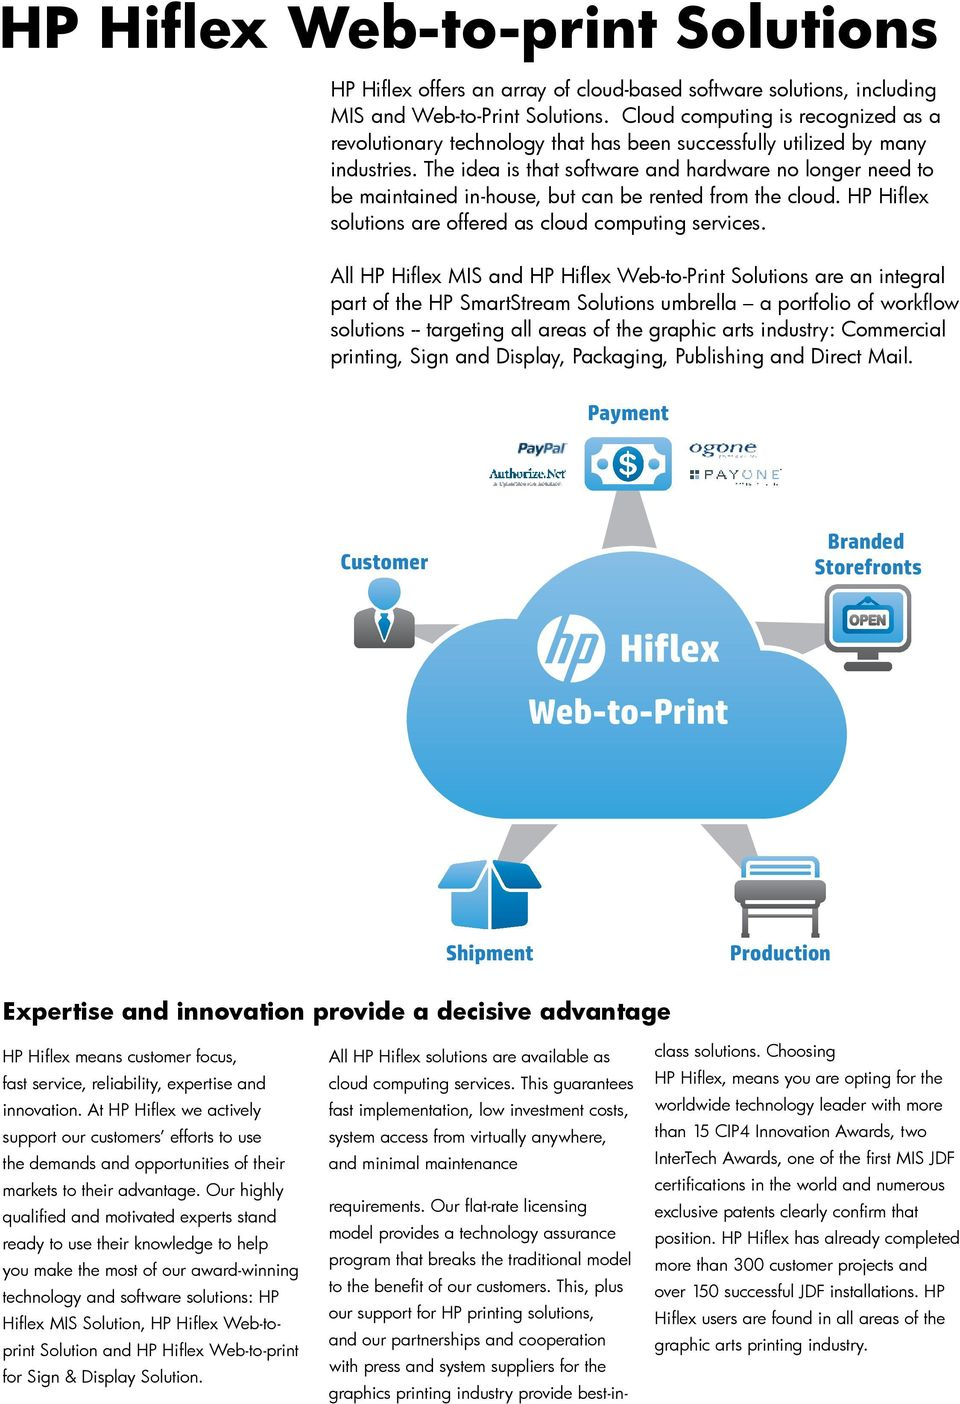 The idea is that software and hardware no longer need to be maintained in-house, but can be rented from the cloud. HP Hiflex solutions are offered as cloud computing services.